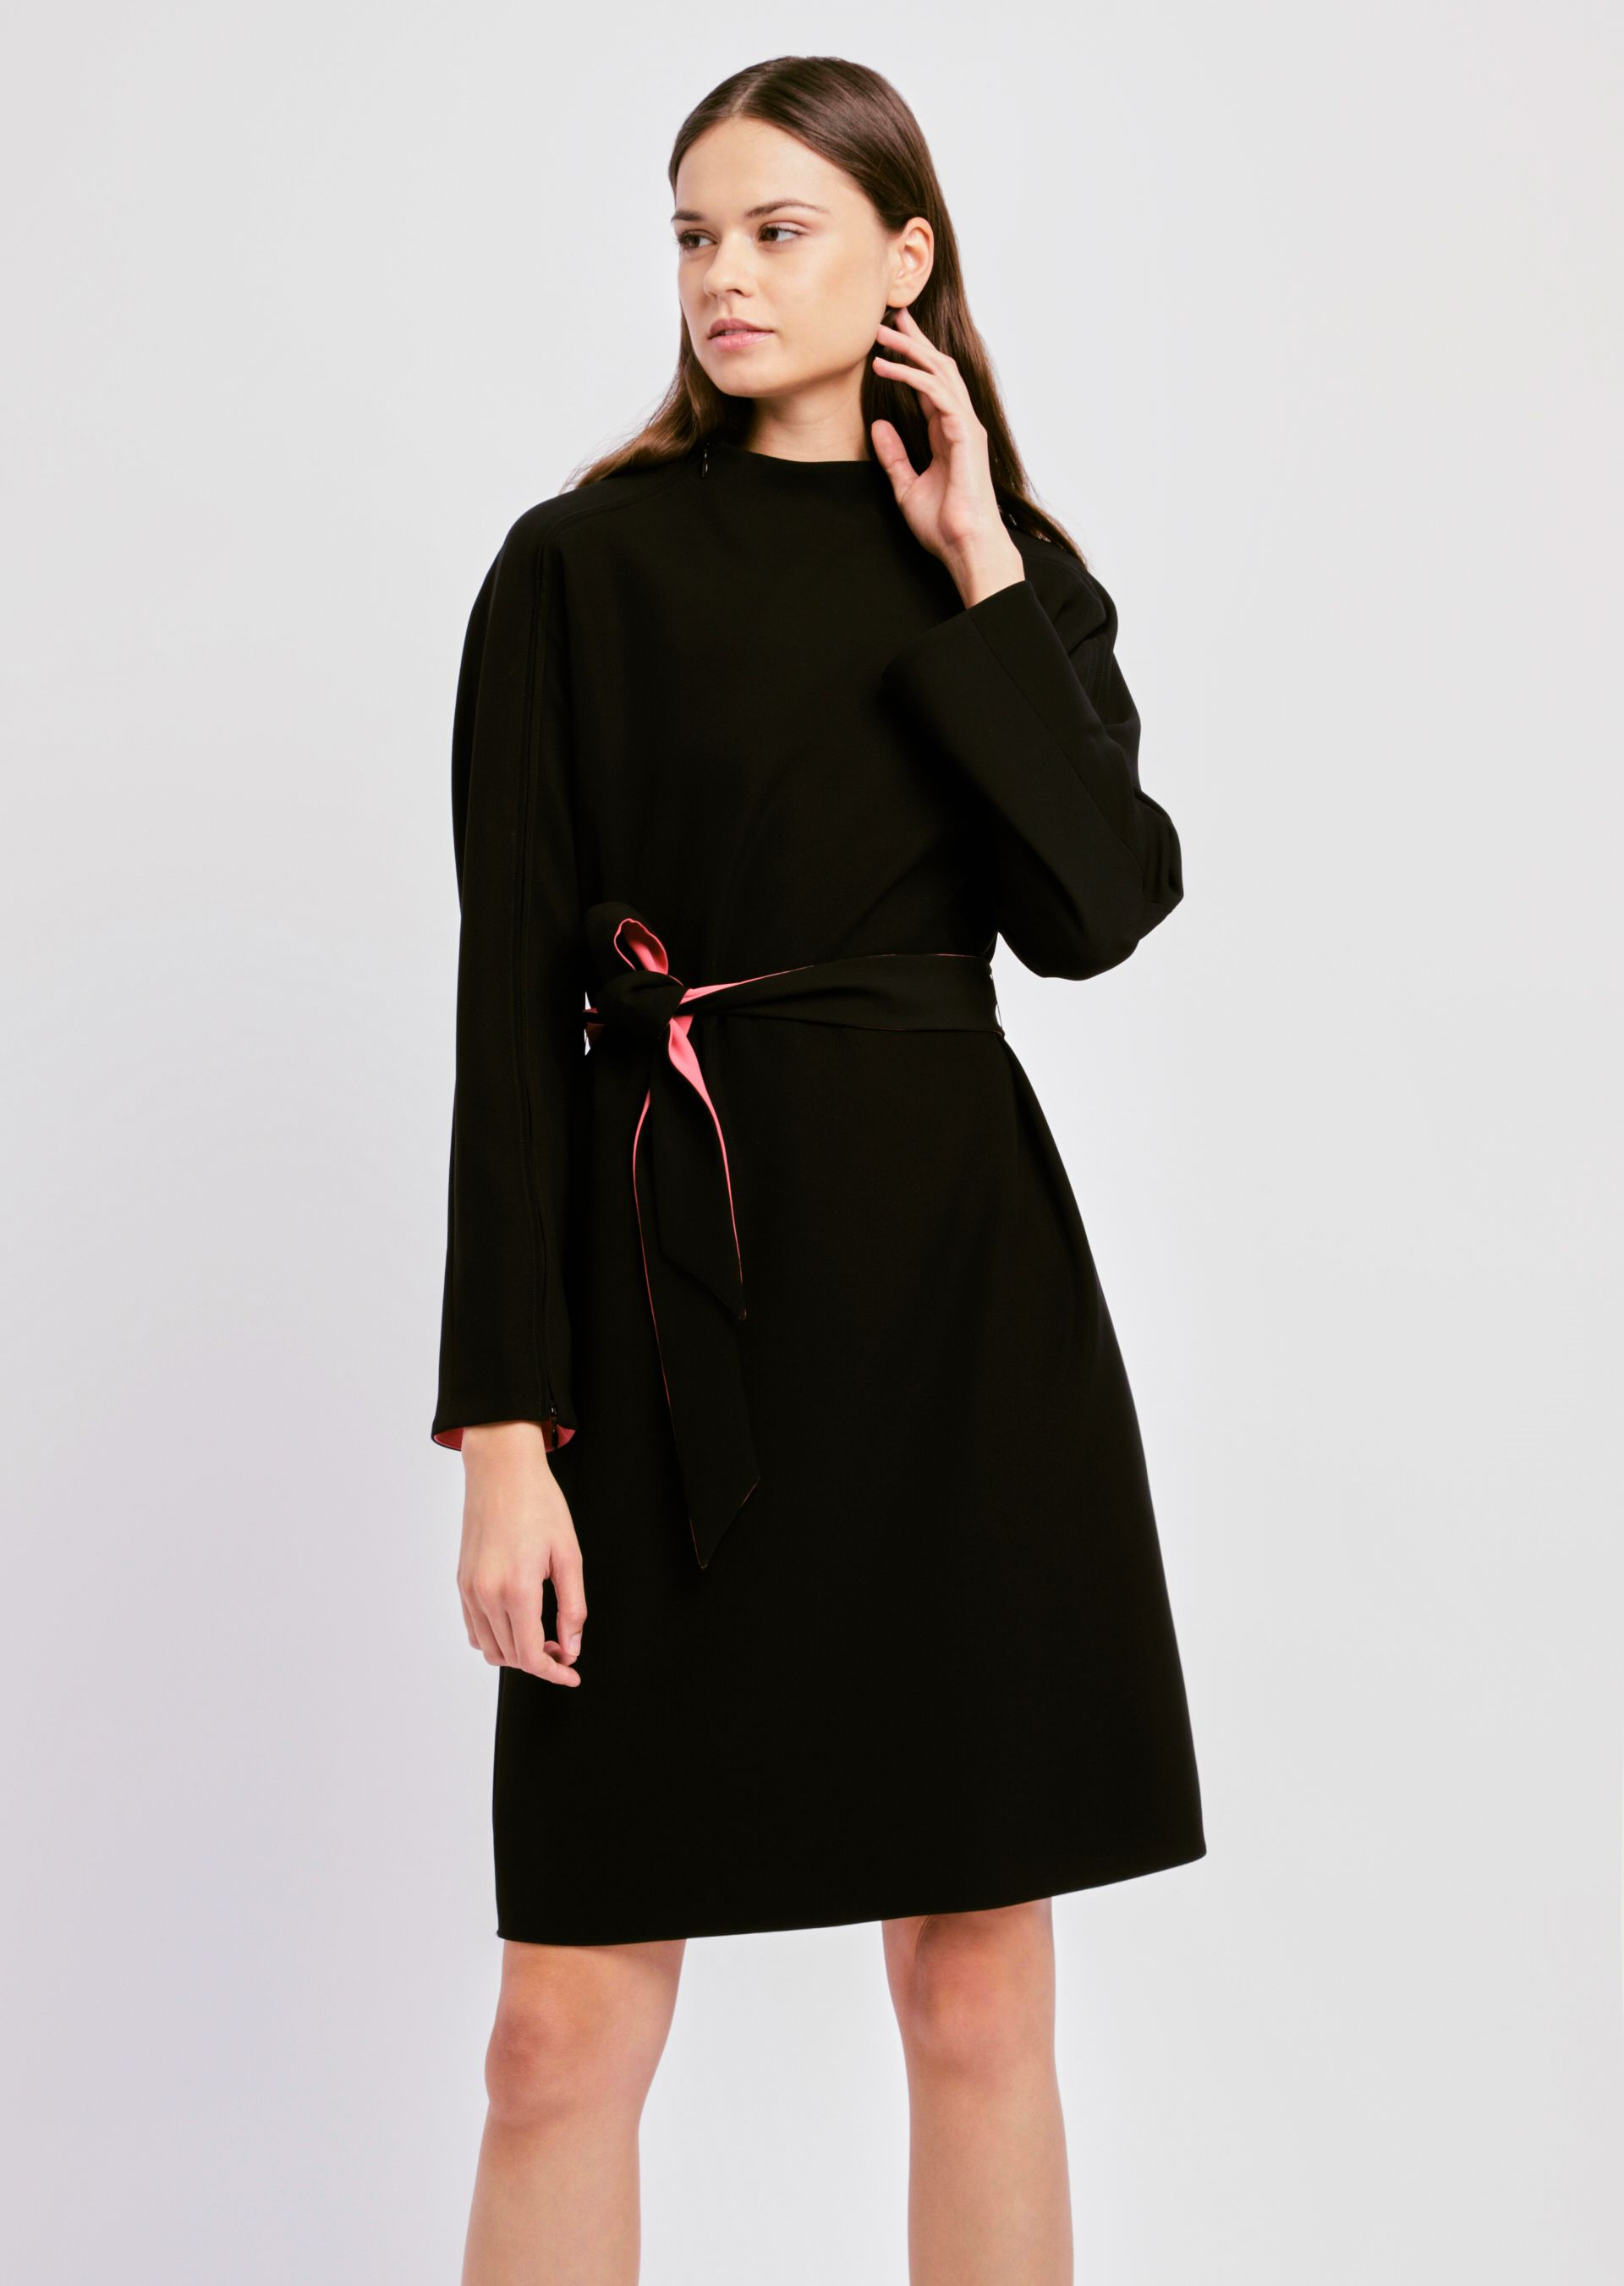 Contrast High Neck Belted Dress in Black from ARMANI.COM